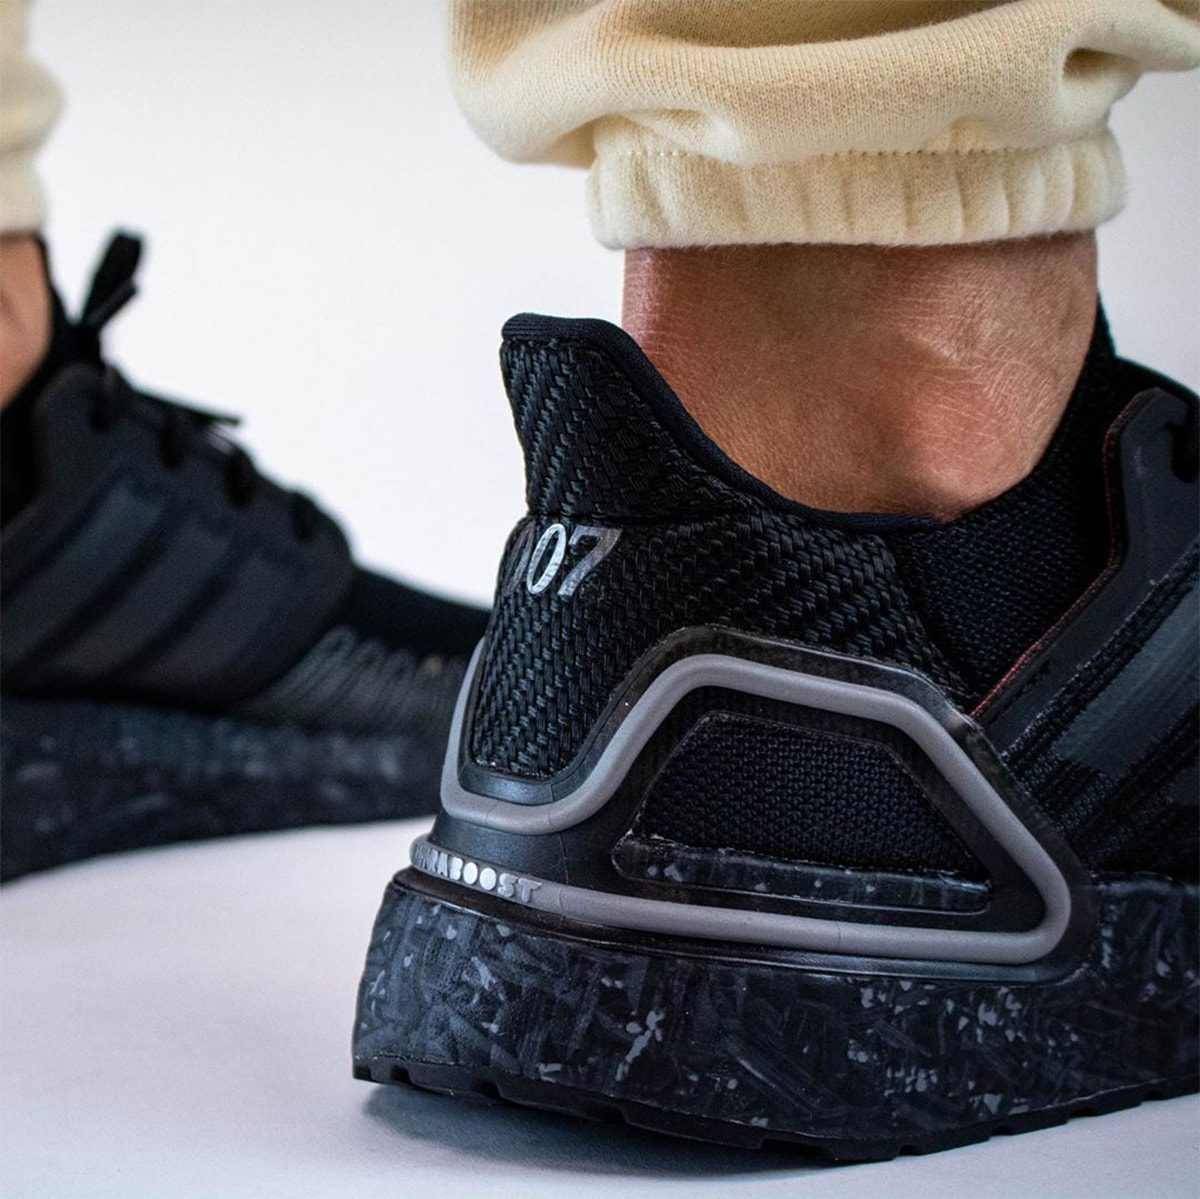 007 James Bond x adidas Collection Arrives October 29th